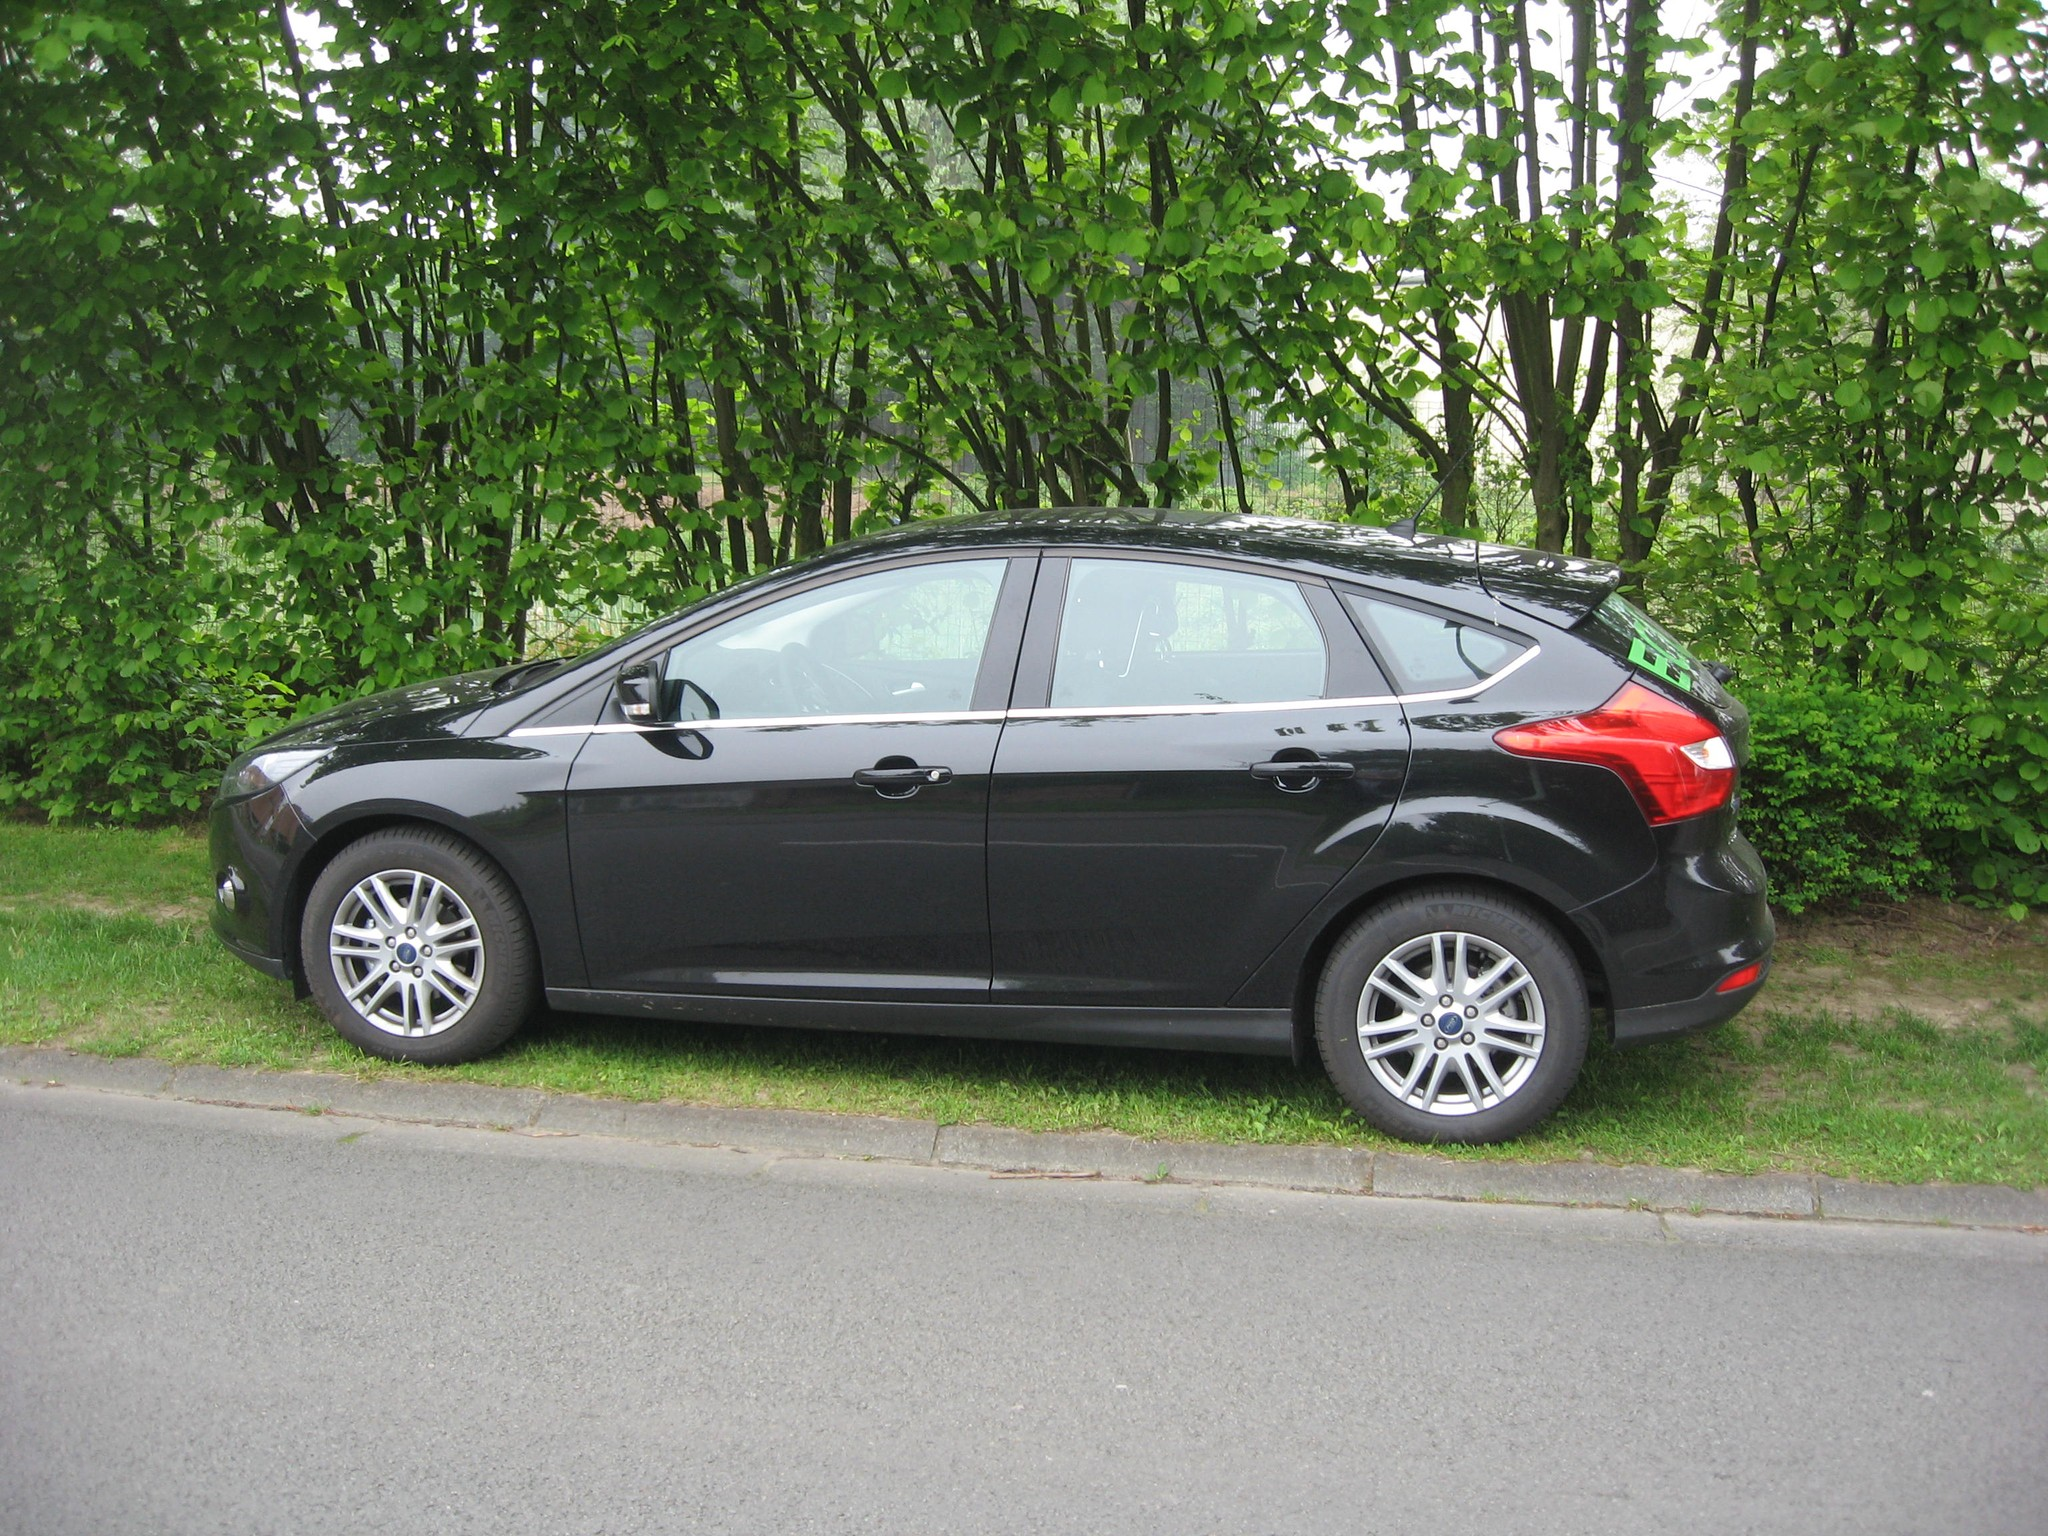 ford focus 1 0 ecoboost test drive. Black Bedroom Furniture Sets. Home Design Ideas